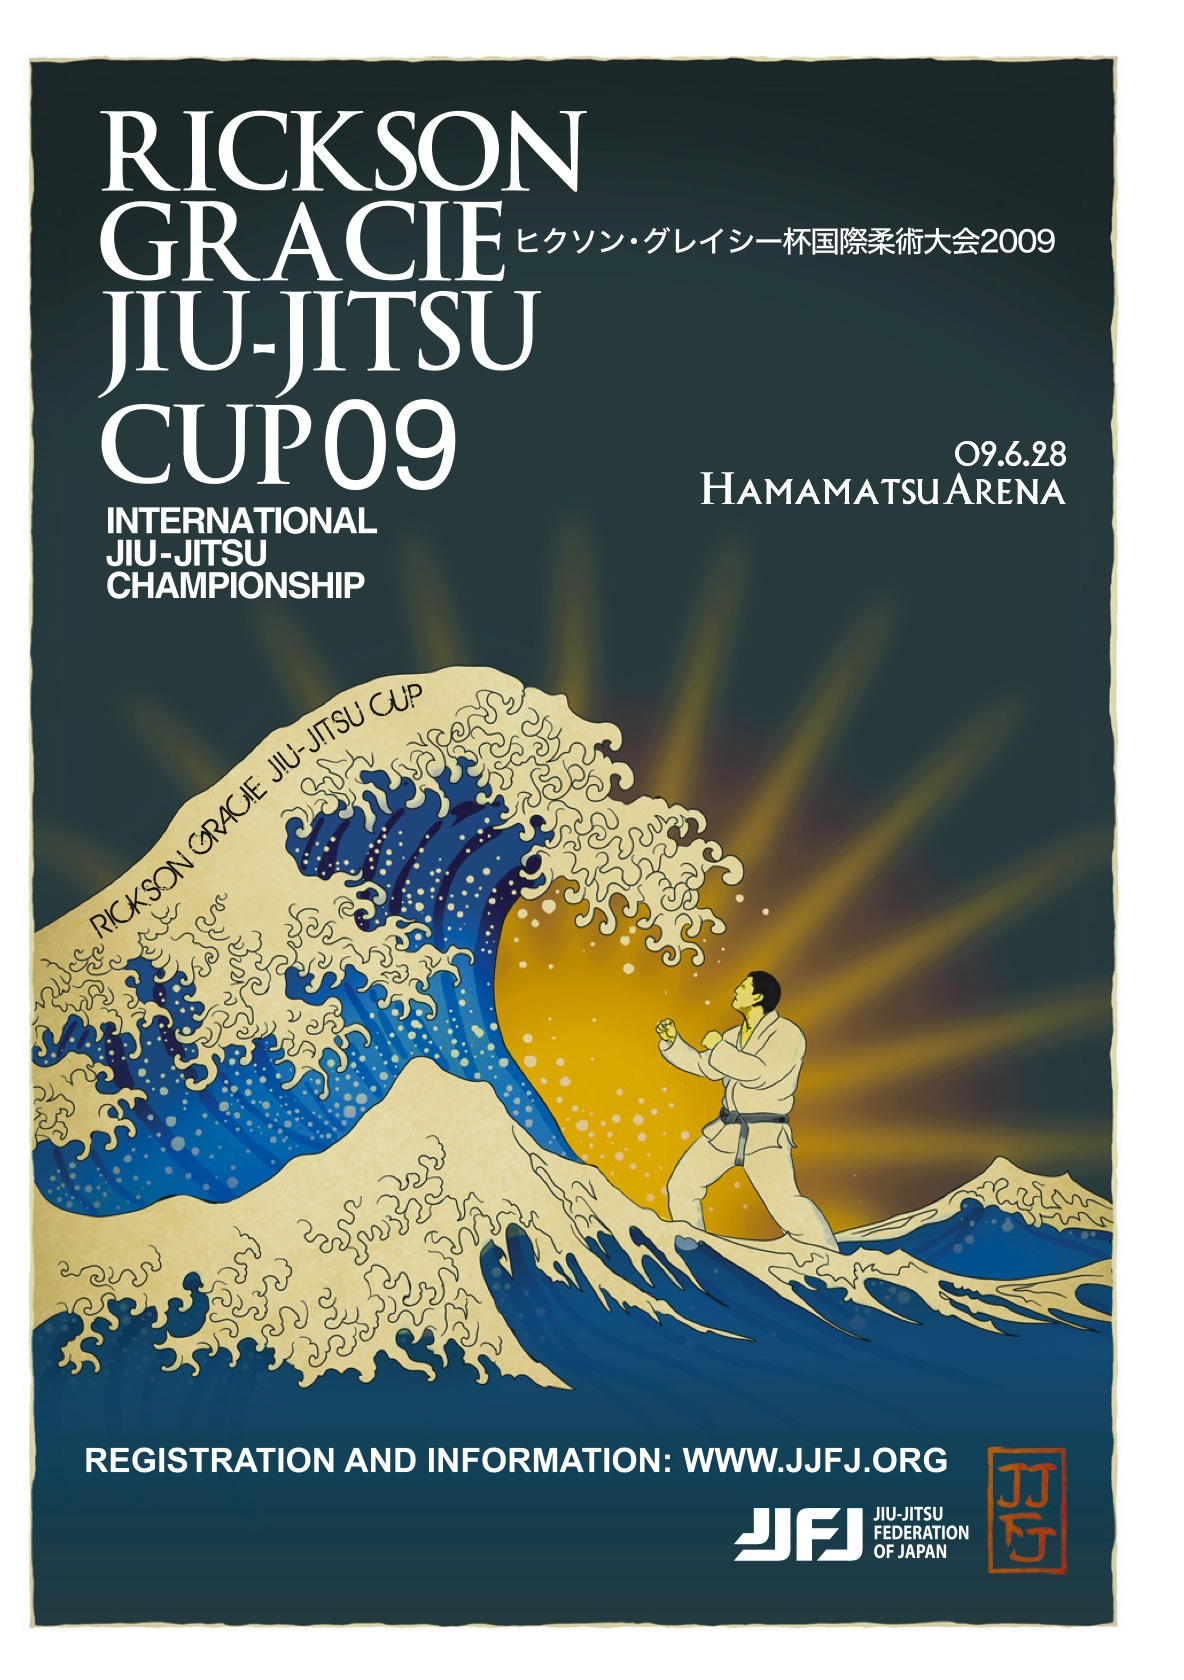 JJFJ お知らせ PRESENTS GIVEN TO RICKSON GRACIE CUP GOLD MEMBER ...